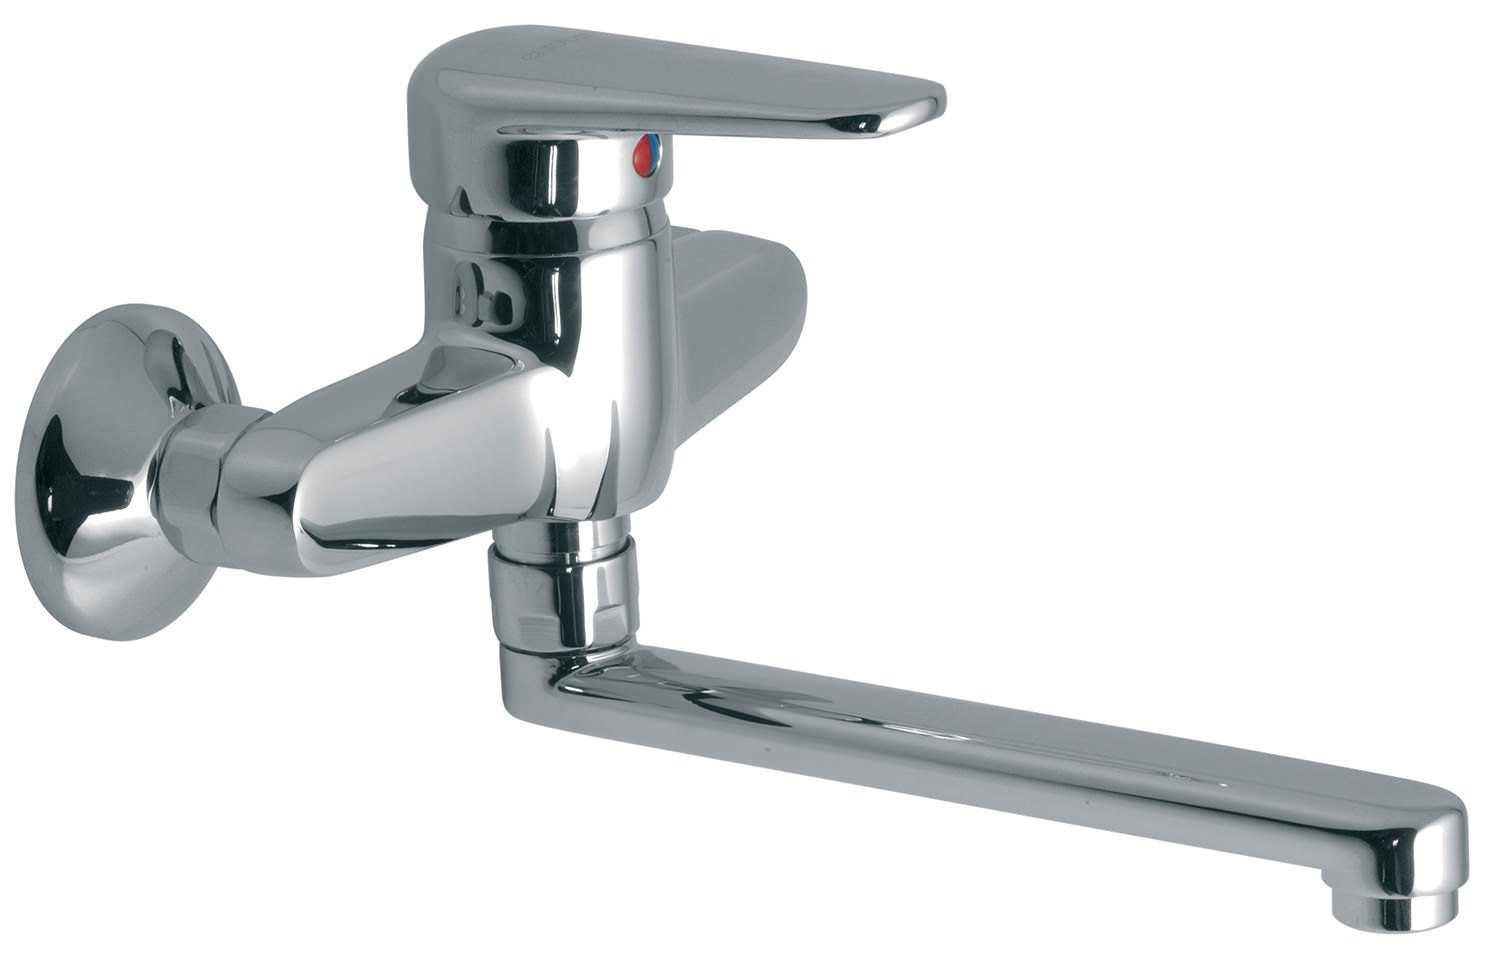 ... taps kitchen mixer taps vado chelsea wall mounted exposed sink mixer